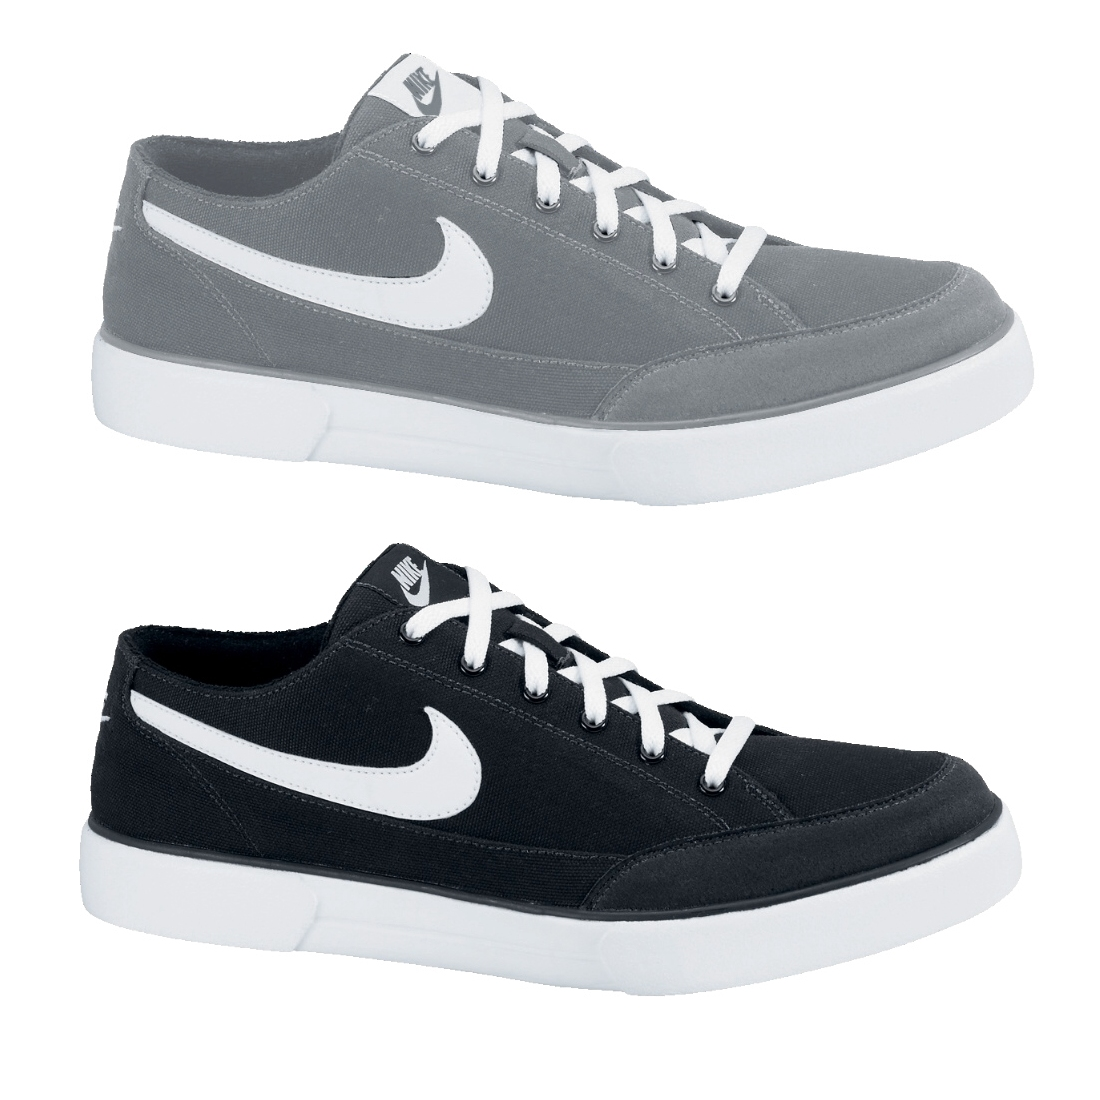 nike gts 12 canvas schuhe sneaker turnschuhe herren damen schwarz grau ebay. Black Bedroom Furniture Sets. Home Design Ideas